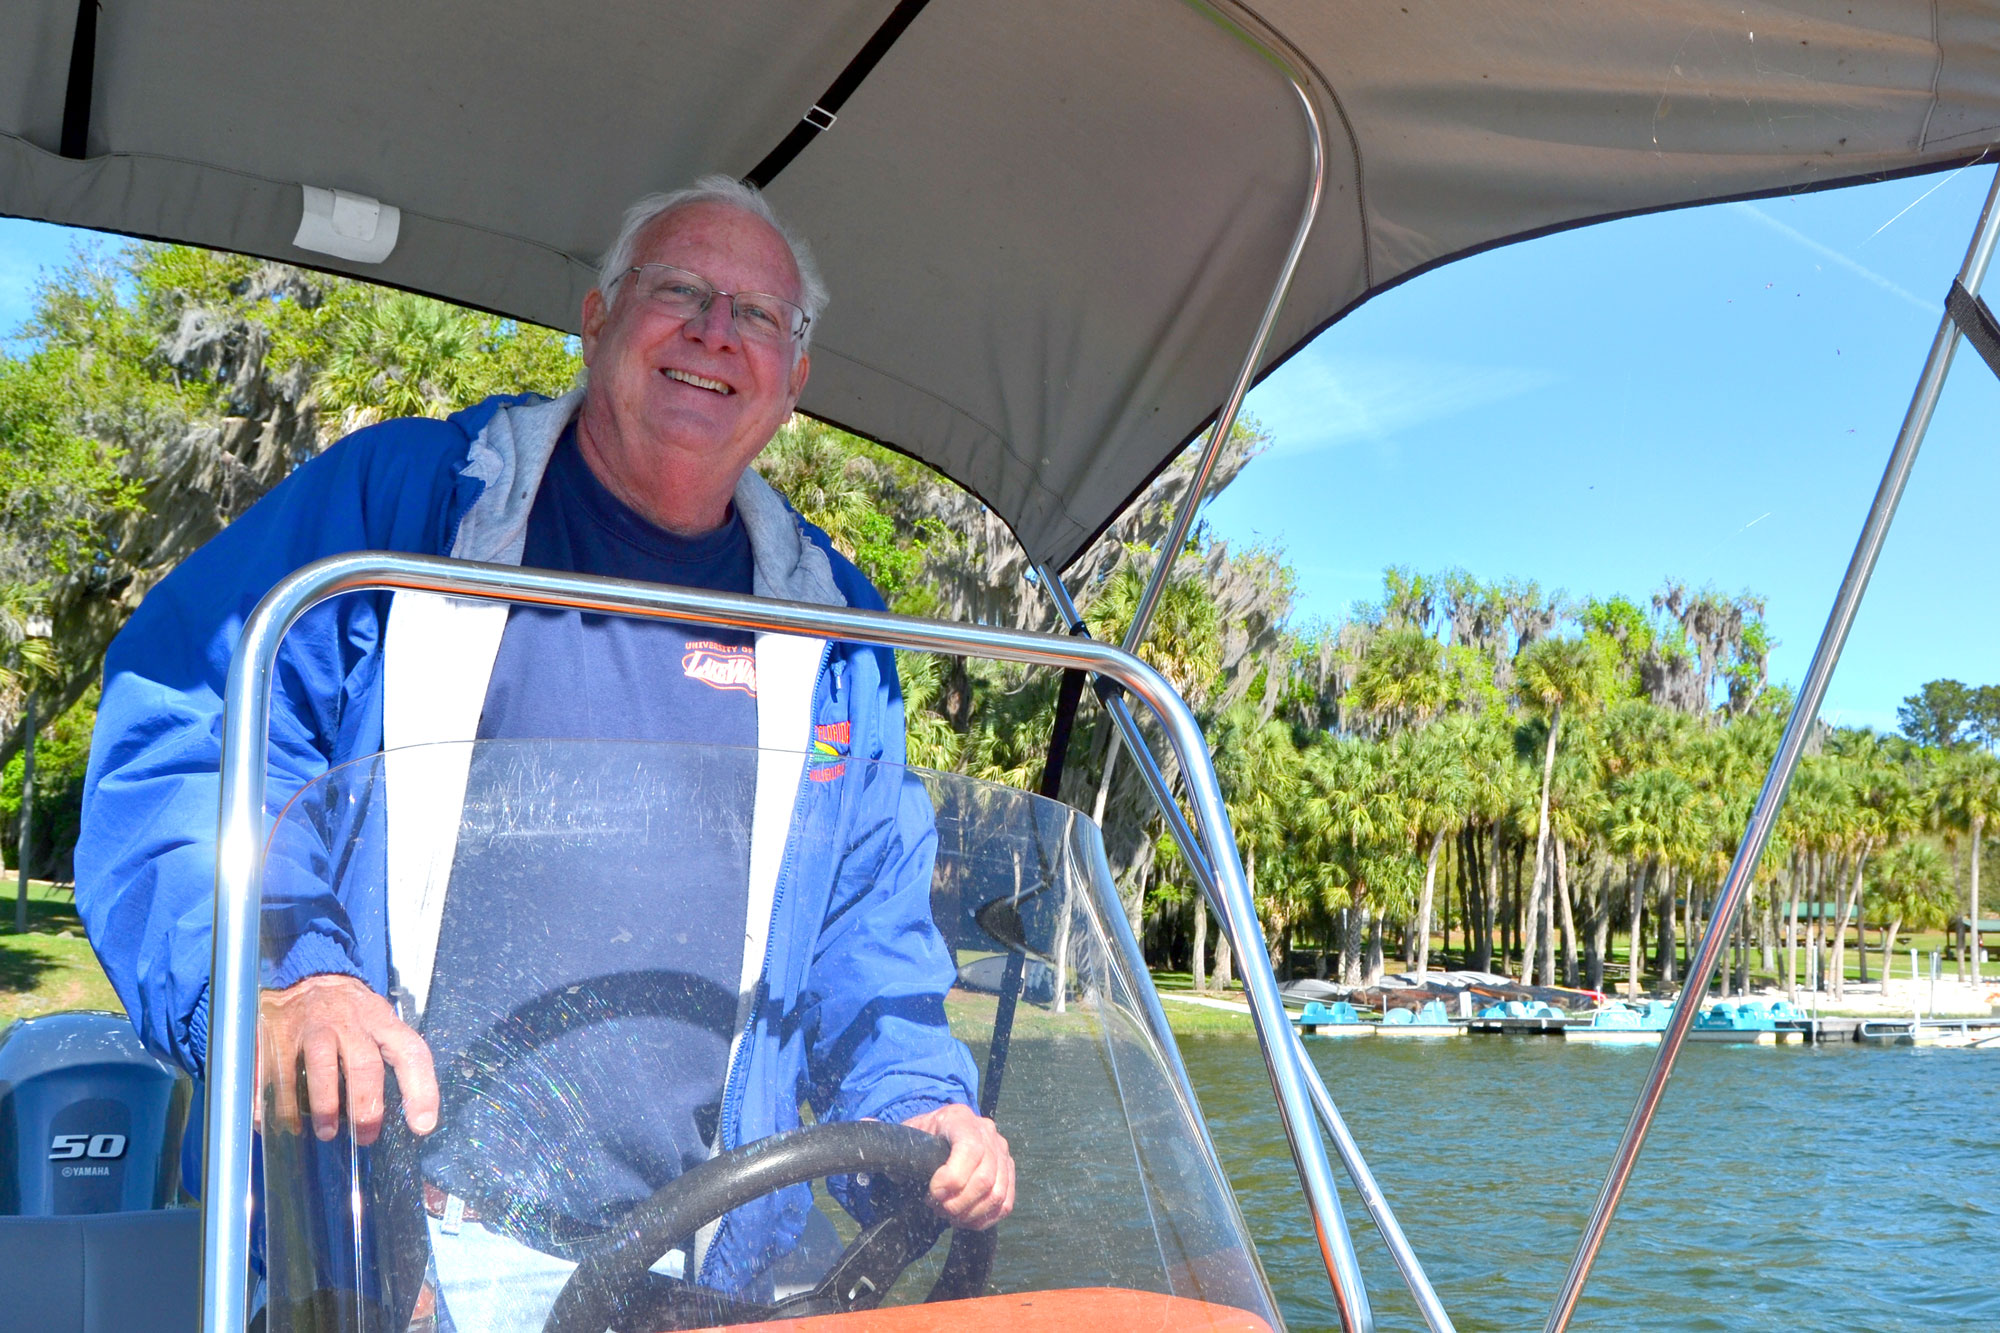 bill james on boat at lake wauburg